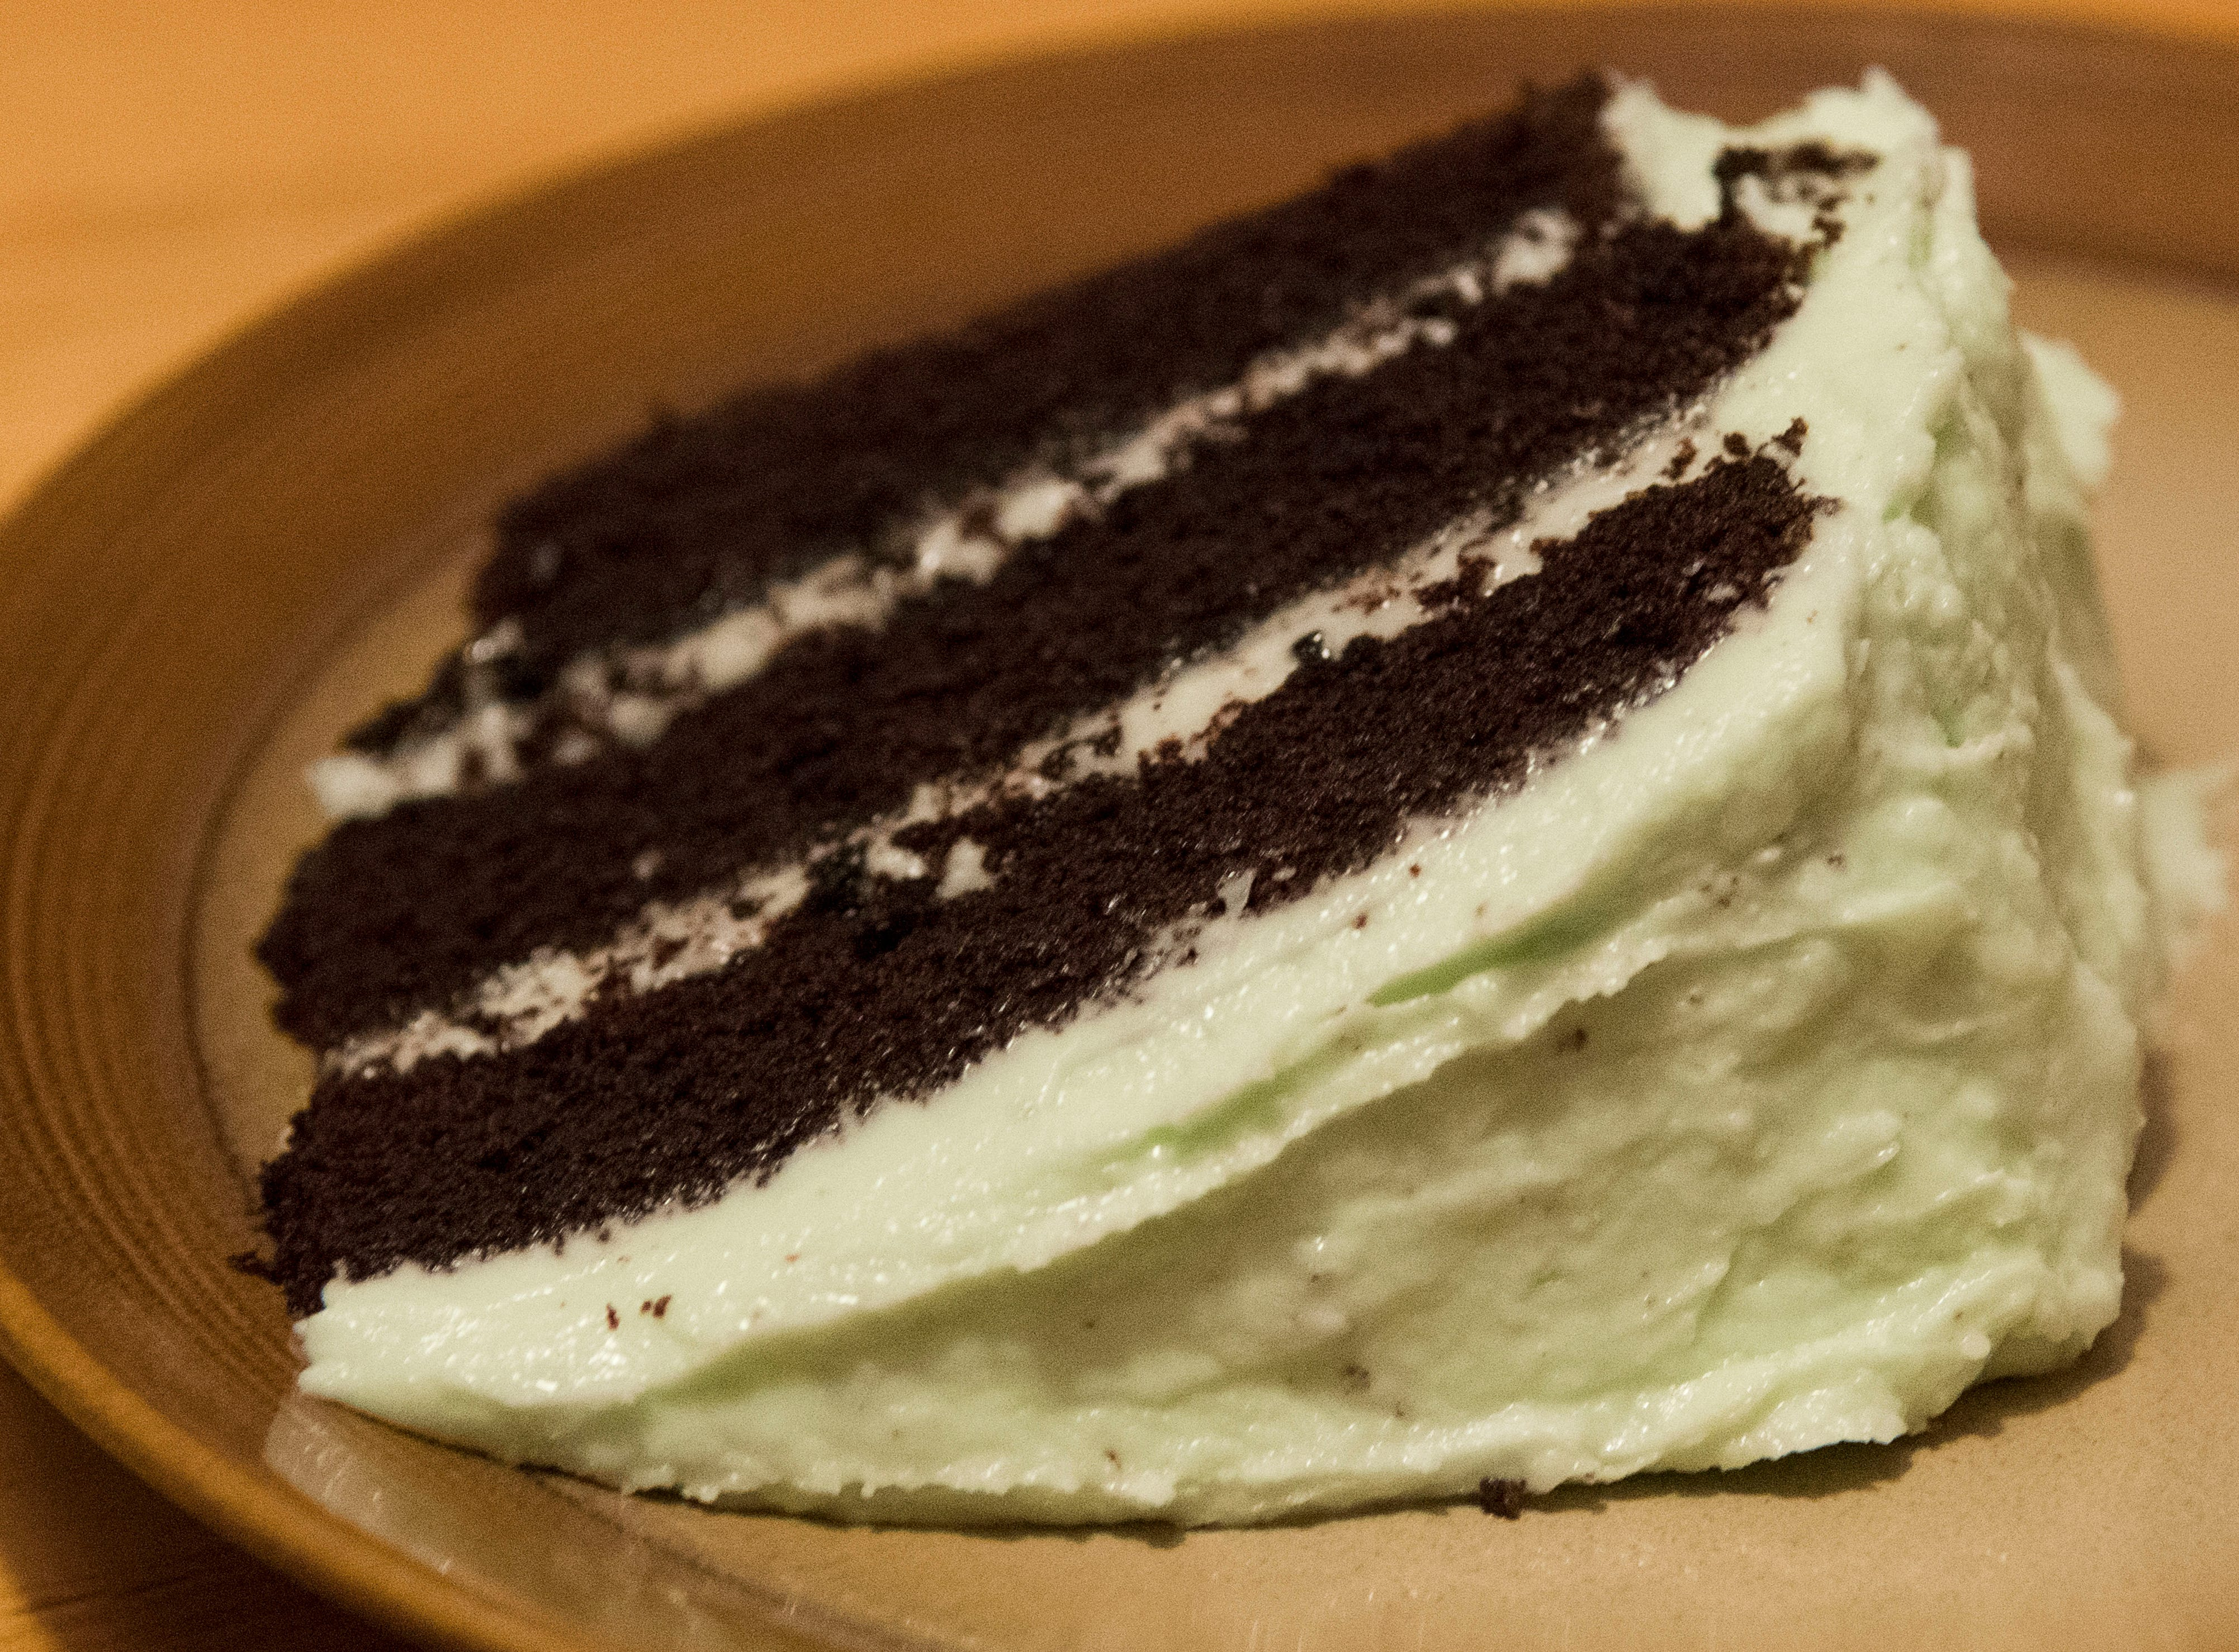 Gluten-free and lactose-free mint choco cake with non-vegan frosting.